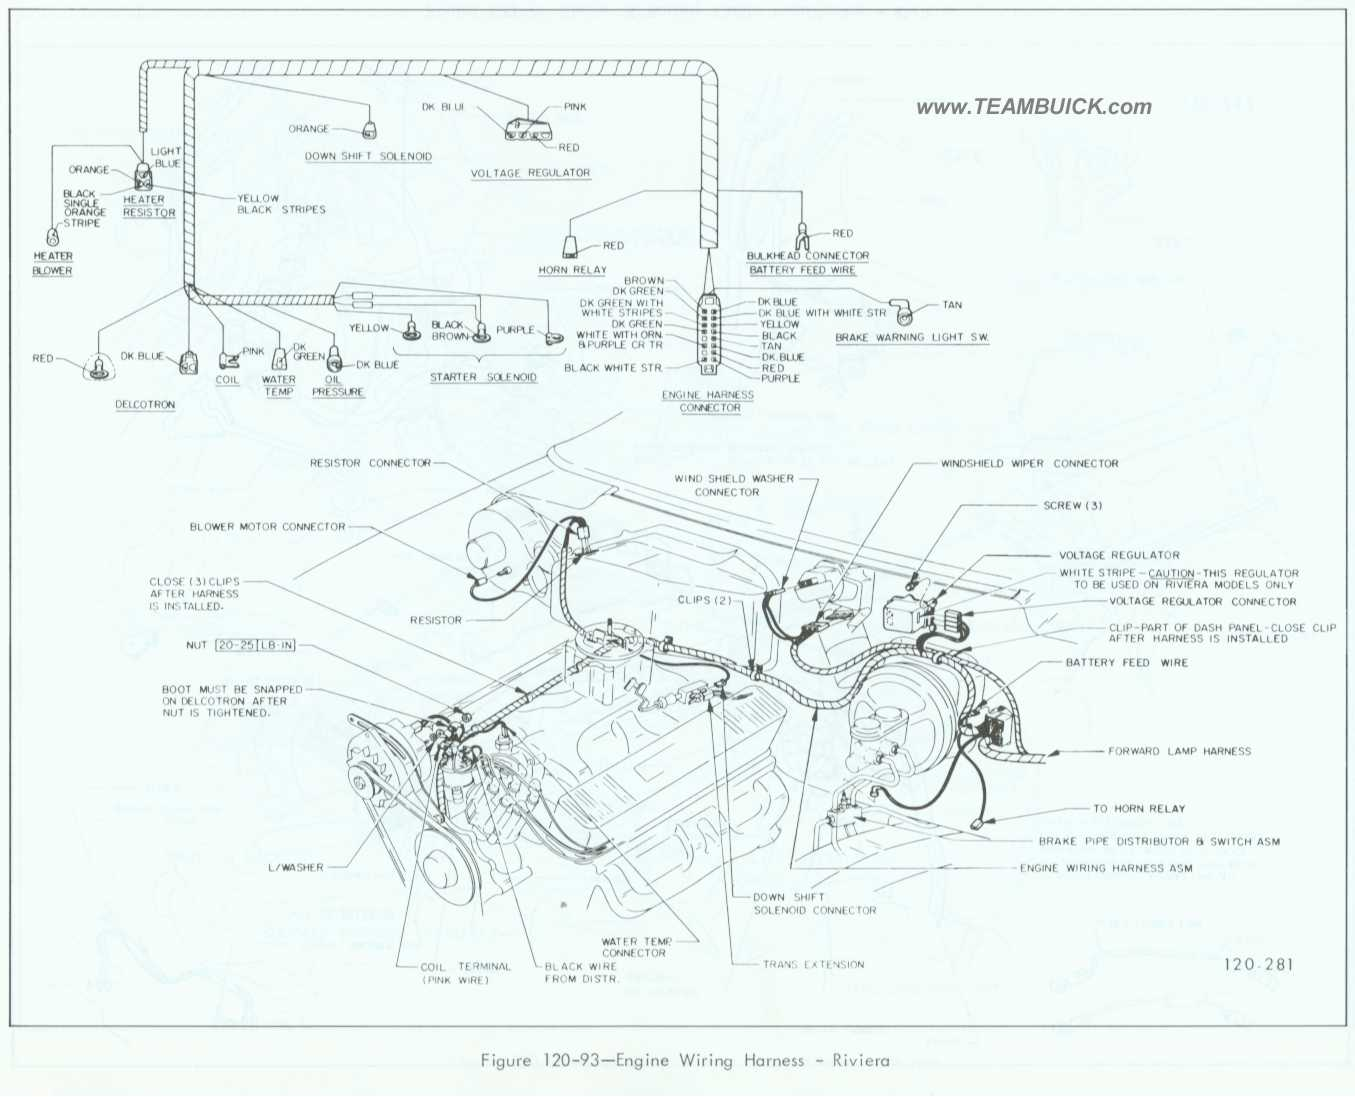 1987 Buick Century Wiring Diagram Engine Harness Best Electrical Circuit 1967 Riviera Rh Teambuick Com Ford 2003